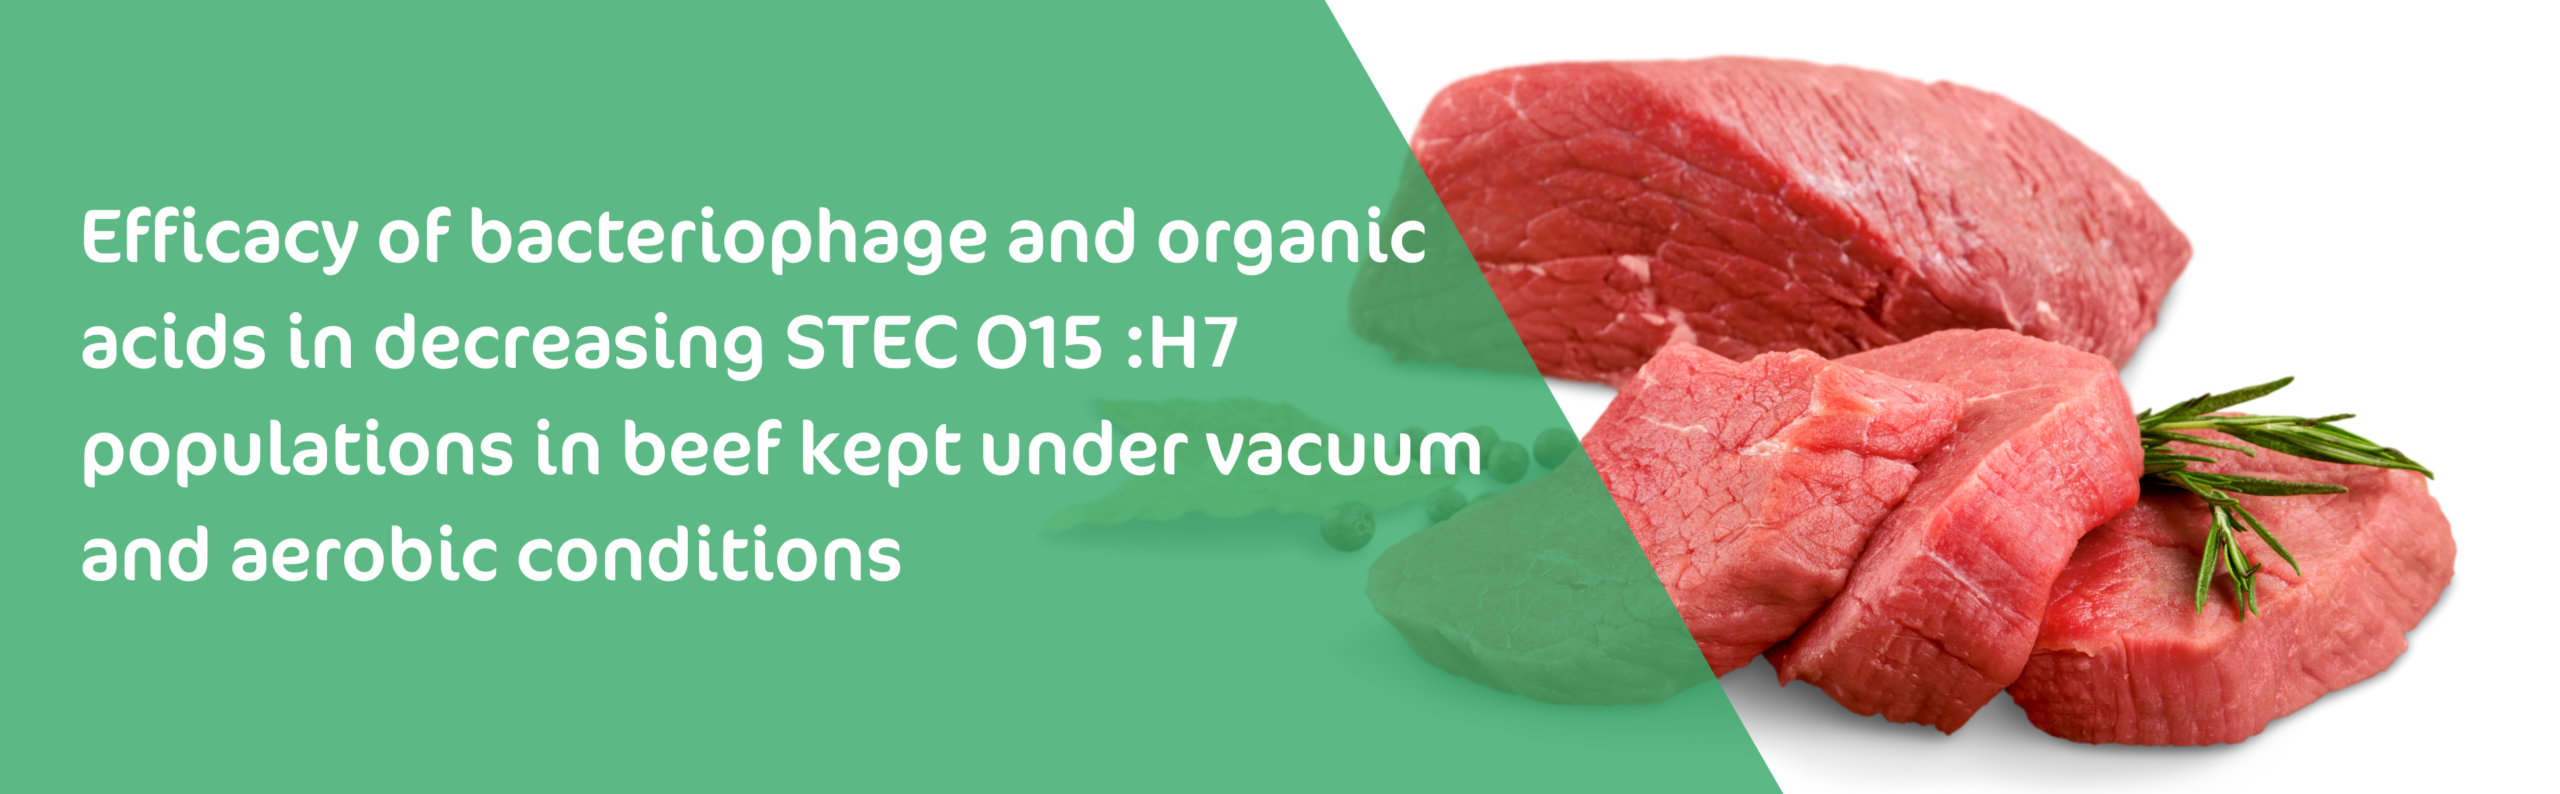 Efficacy of bacteriophage and organic acids in decreasing STEC O157:H7 populations in beef kept under vacuum and aerobic conditions